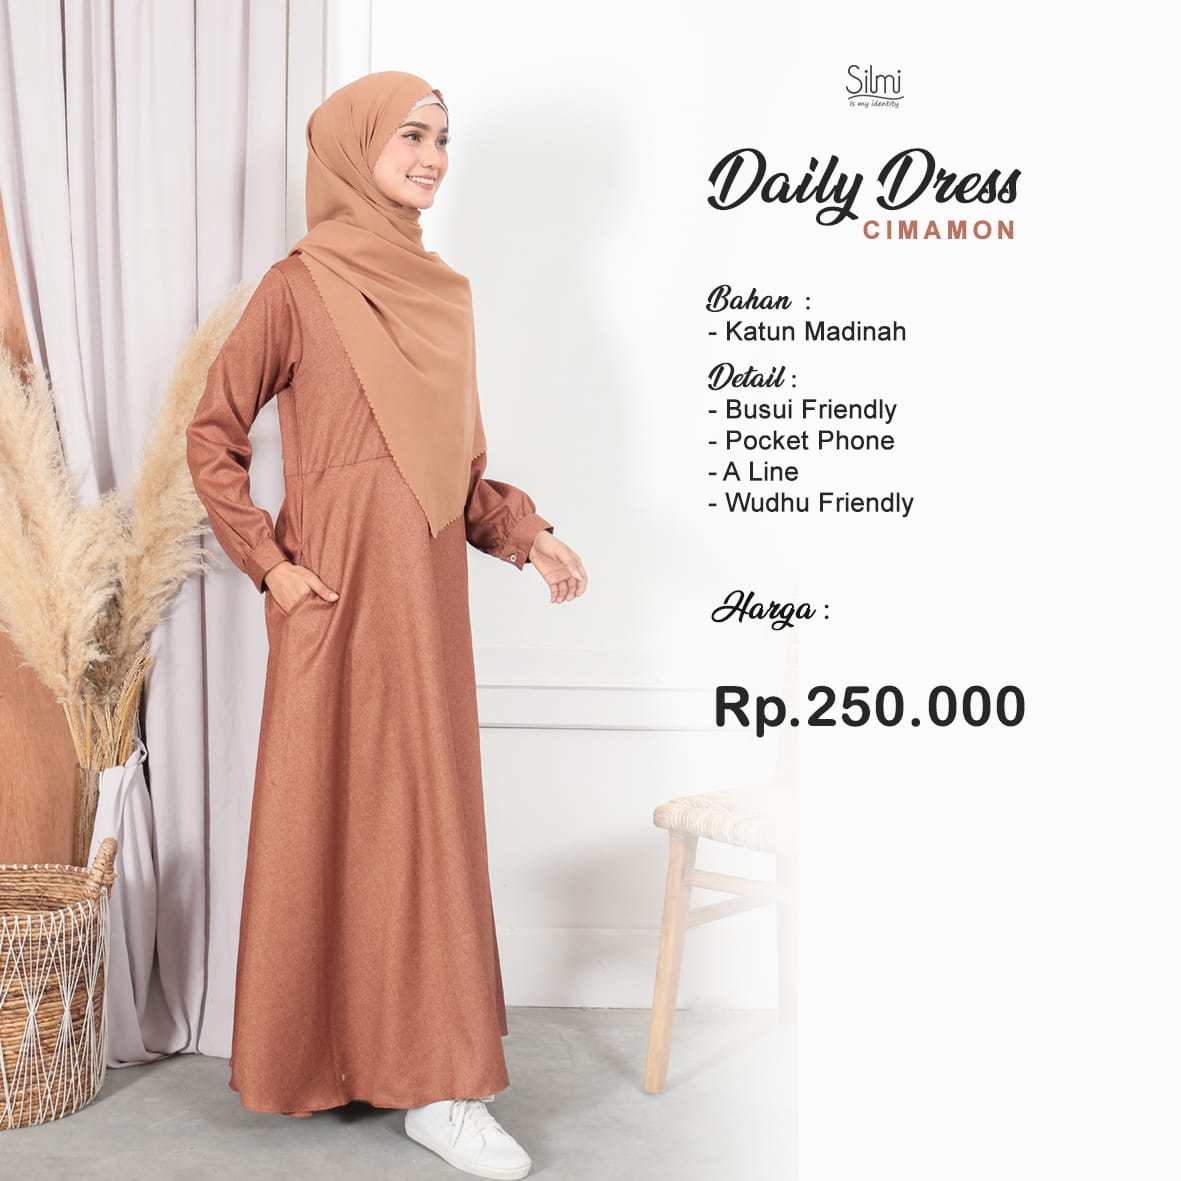 Silmi Daily Dress Katun Madinah  Cinamon